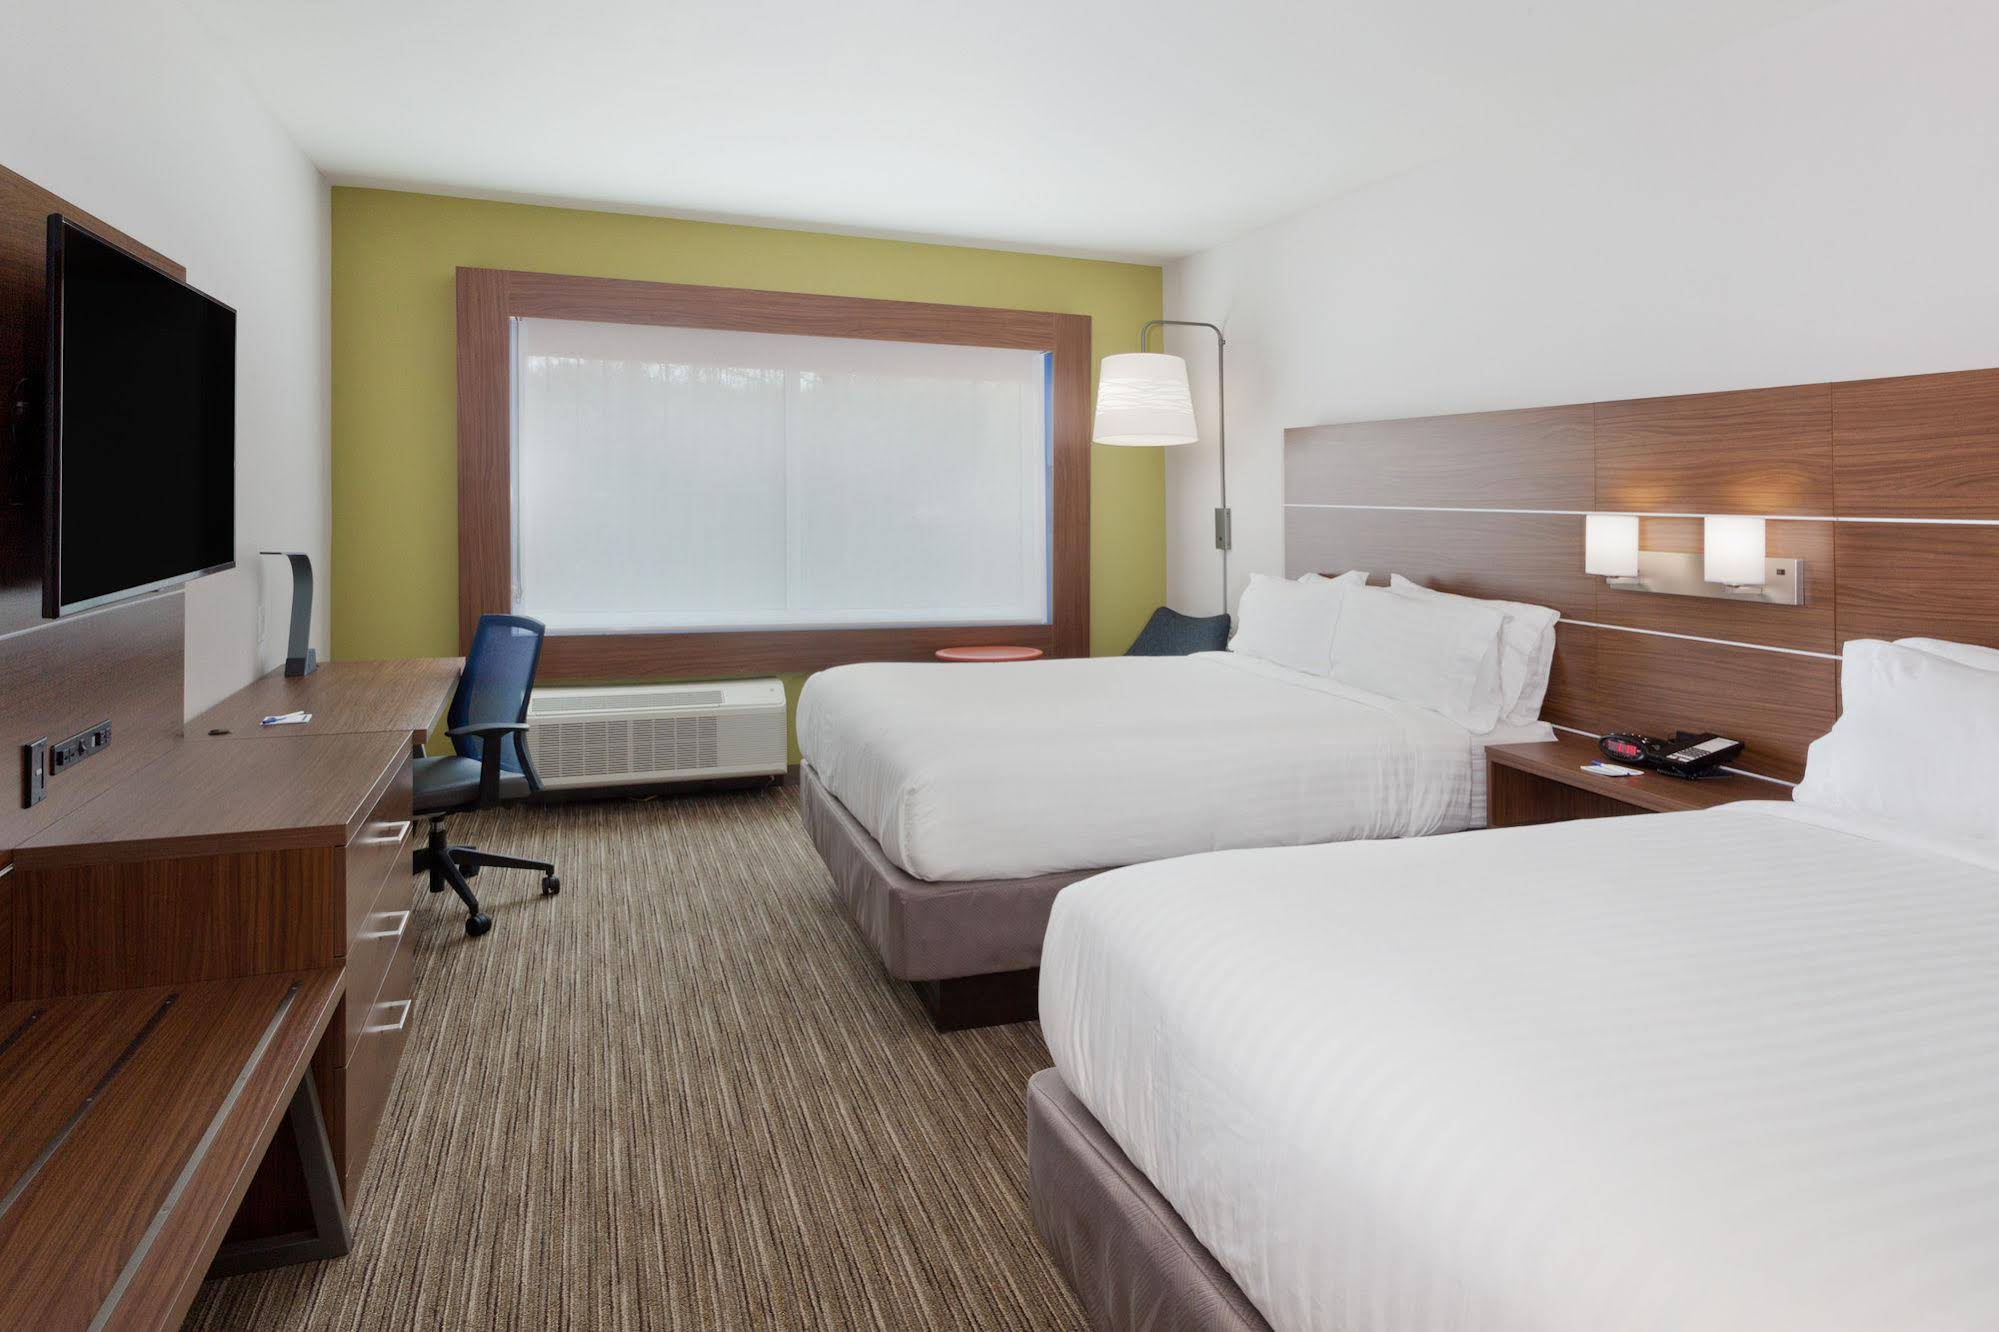 Holiday Inn Express and Suites Cartersville